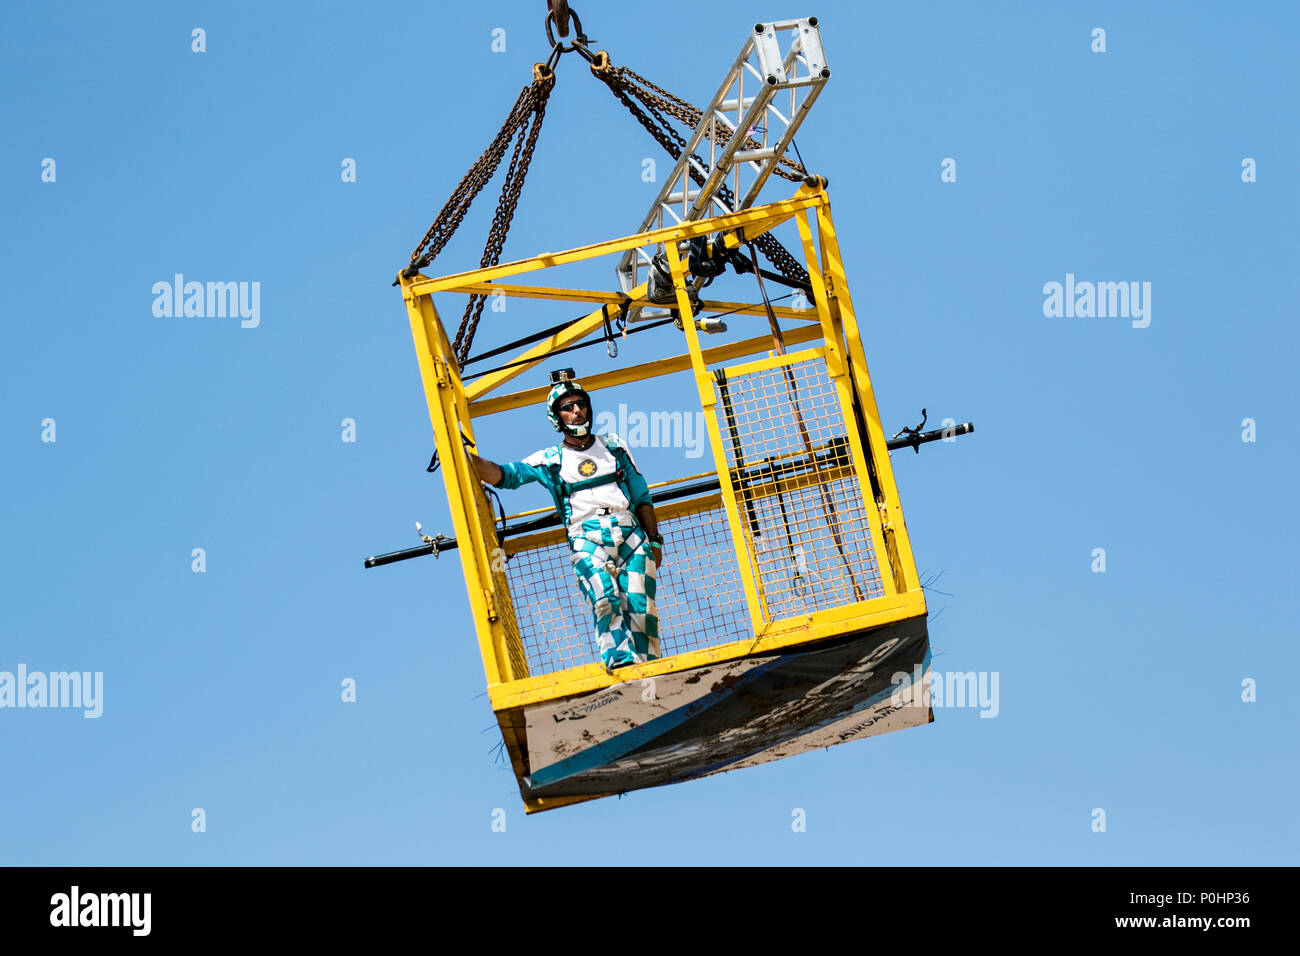 Blackpool, Lancashire, UK. 9 June 2018. The AirgameZ is the definitive BASE jumping competition of the Great British Isles. Elite jumpers from around the world are invited to participate from our 473ft high crane in competition to see who has the nerve, skill & style to thrill the crowds & win the judges scorecards. From this altitude jumpers can expect a solid delay of over 3 seconds, perform staged-deployment multi-ways, AAF style linked exits & aerobatic multi-axis rotations on descent. Credit:MediaWorldImages/AlamyLiveNews. - Stock Image